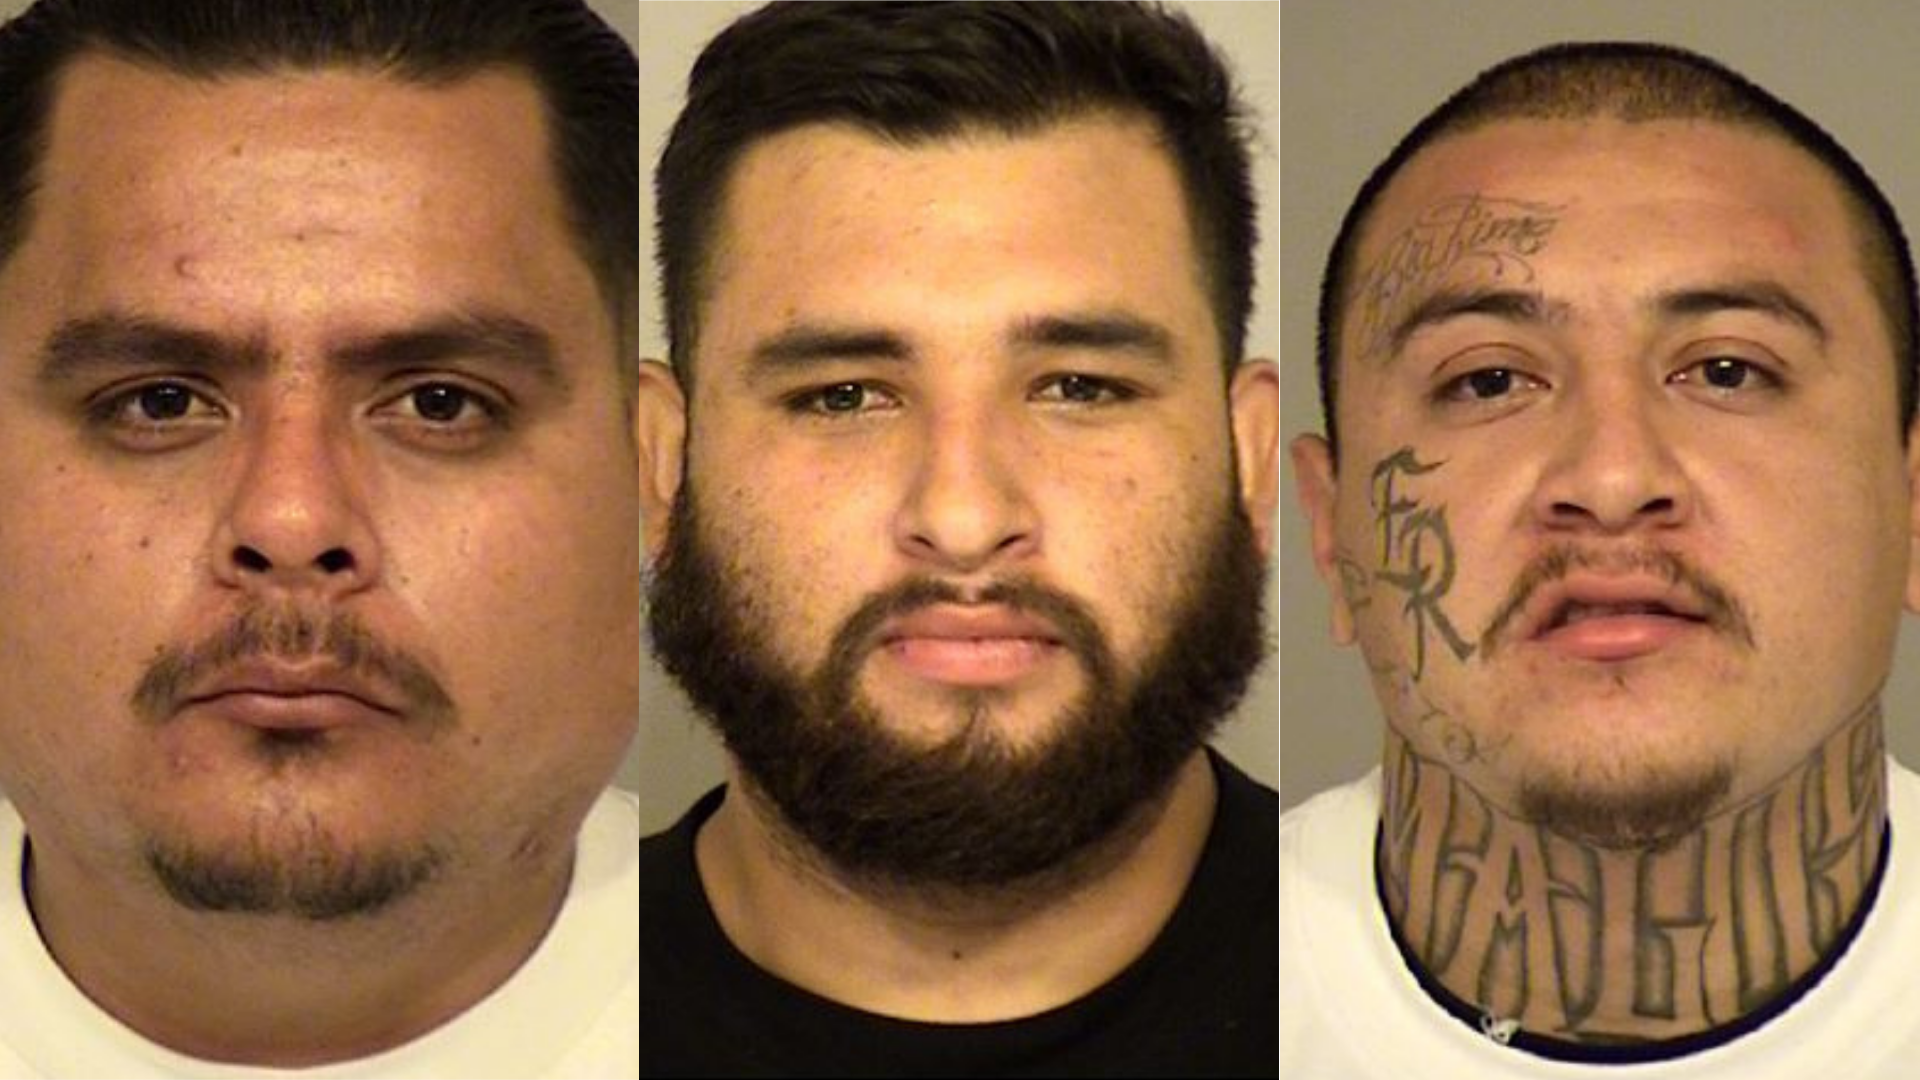 From left: Andrew Robles, Joshua Magdaleno and Joel Mendoza appear in booking photos released by the Ventura County Sheriff's Office on Sept. 27, 2020.